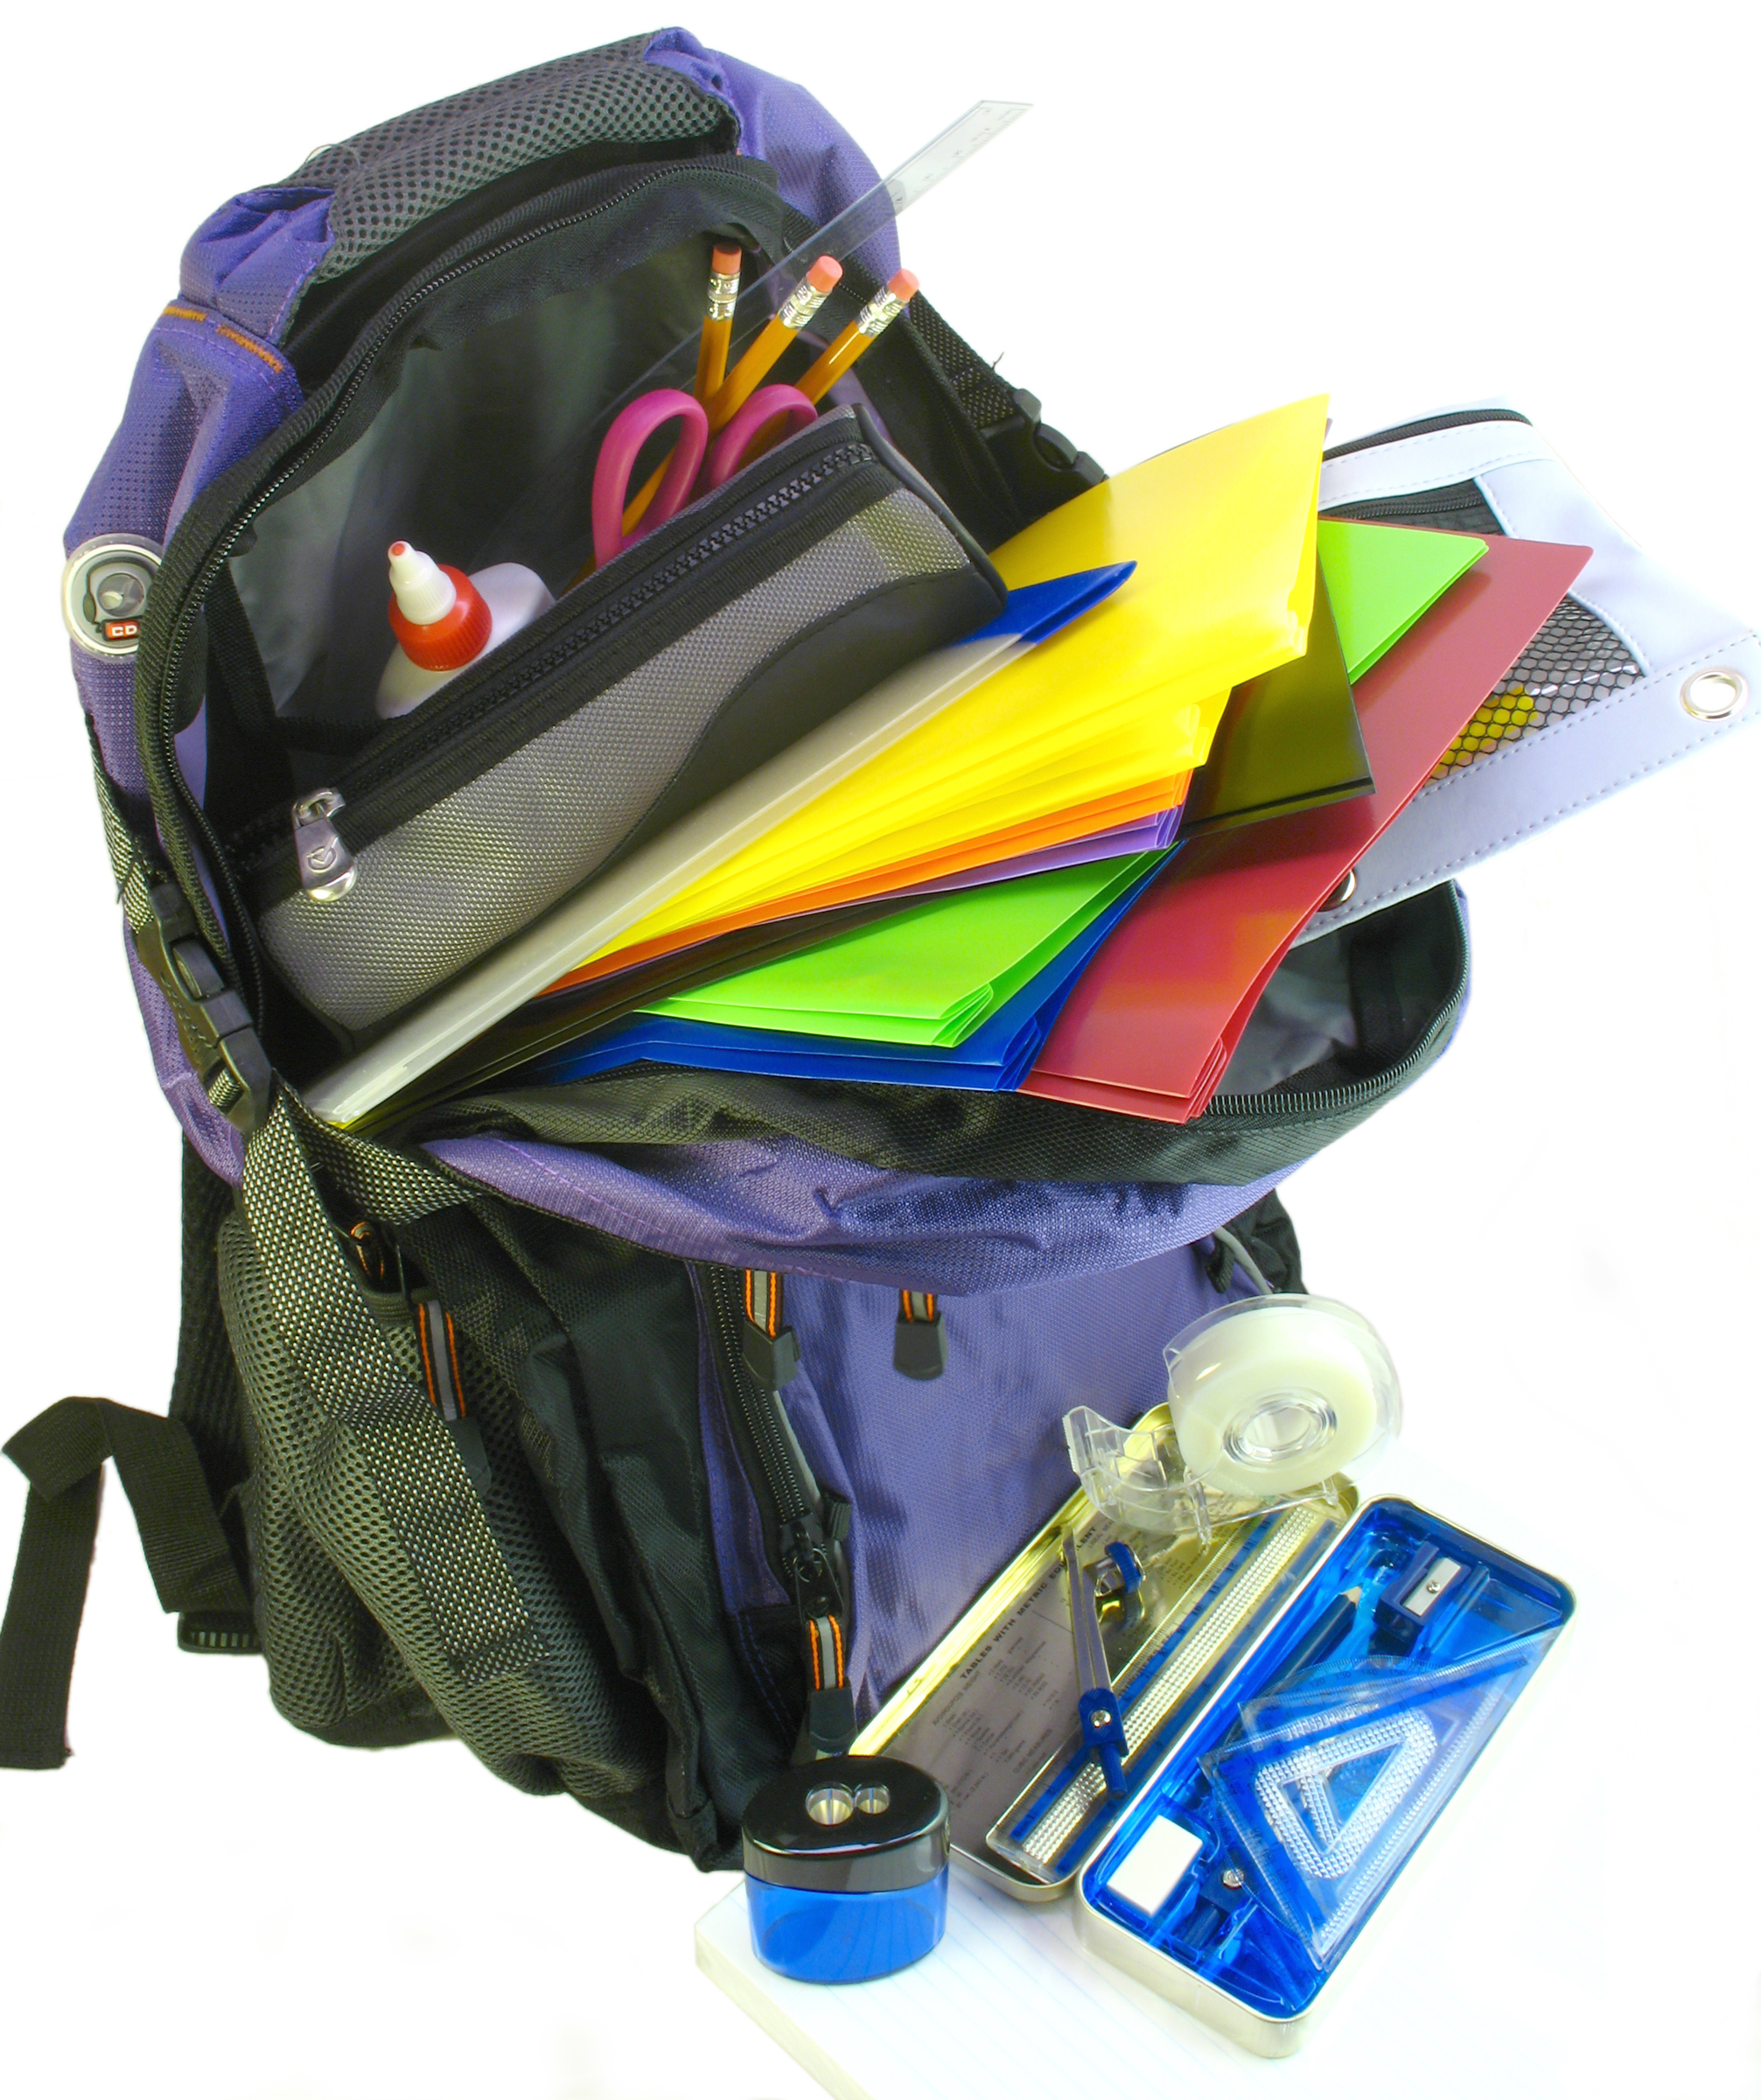 Emptying the backpack